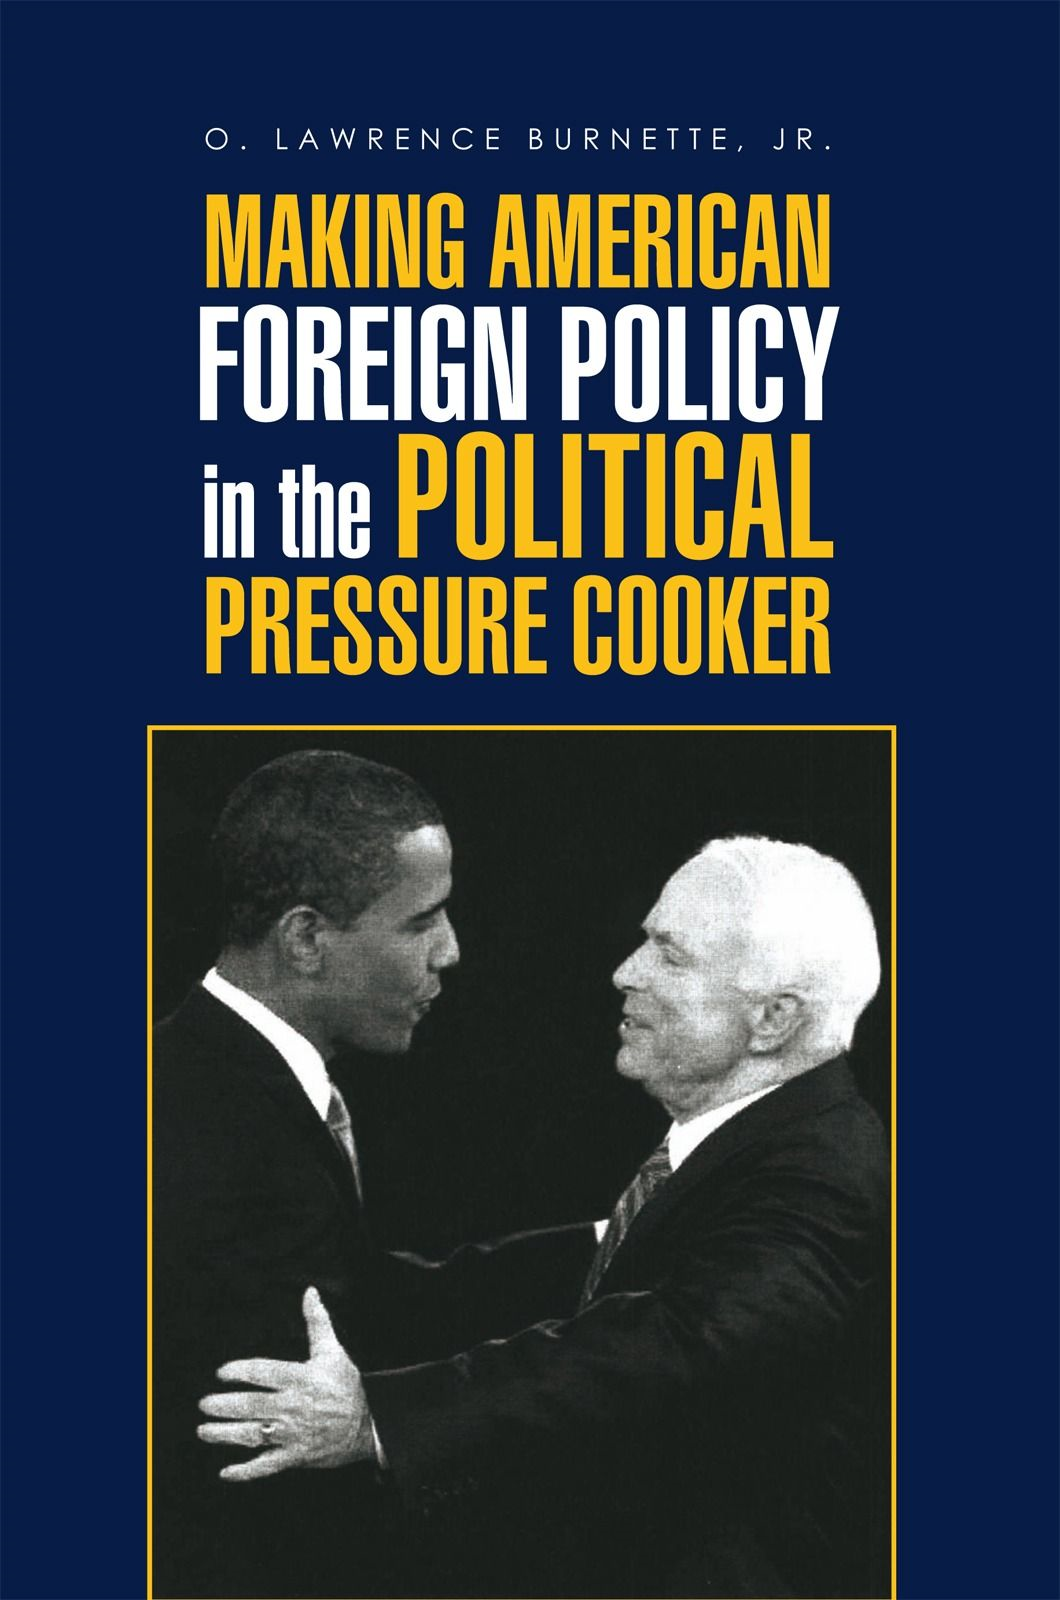 MAKING AMERICAN FOREIGN POLICY in the POLITICAL PRESSURE COOKER By: Jr. O. Lawrence Burnette